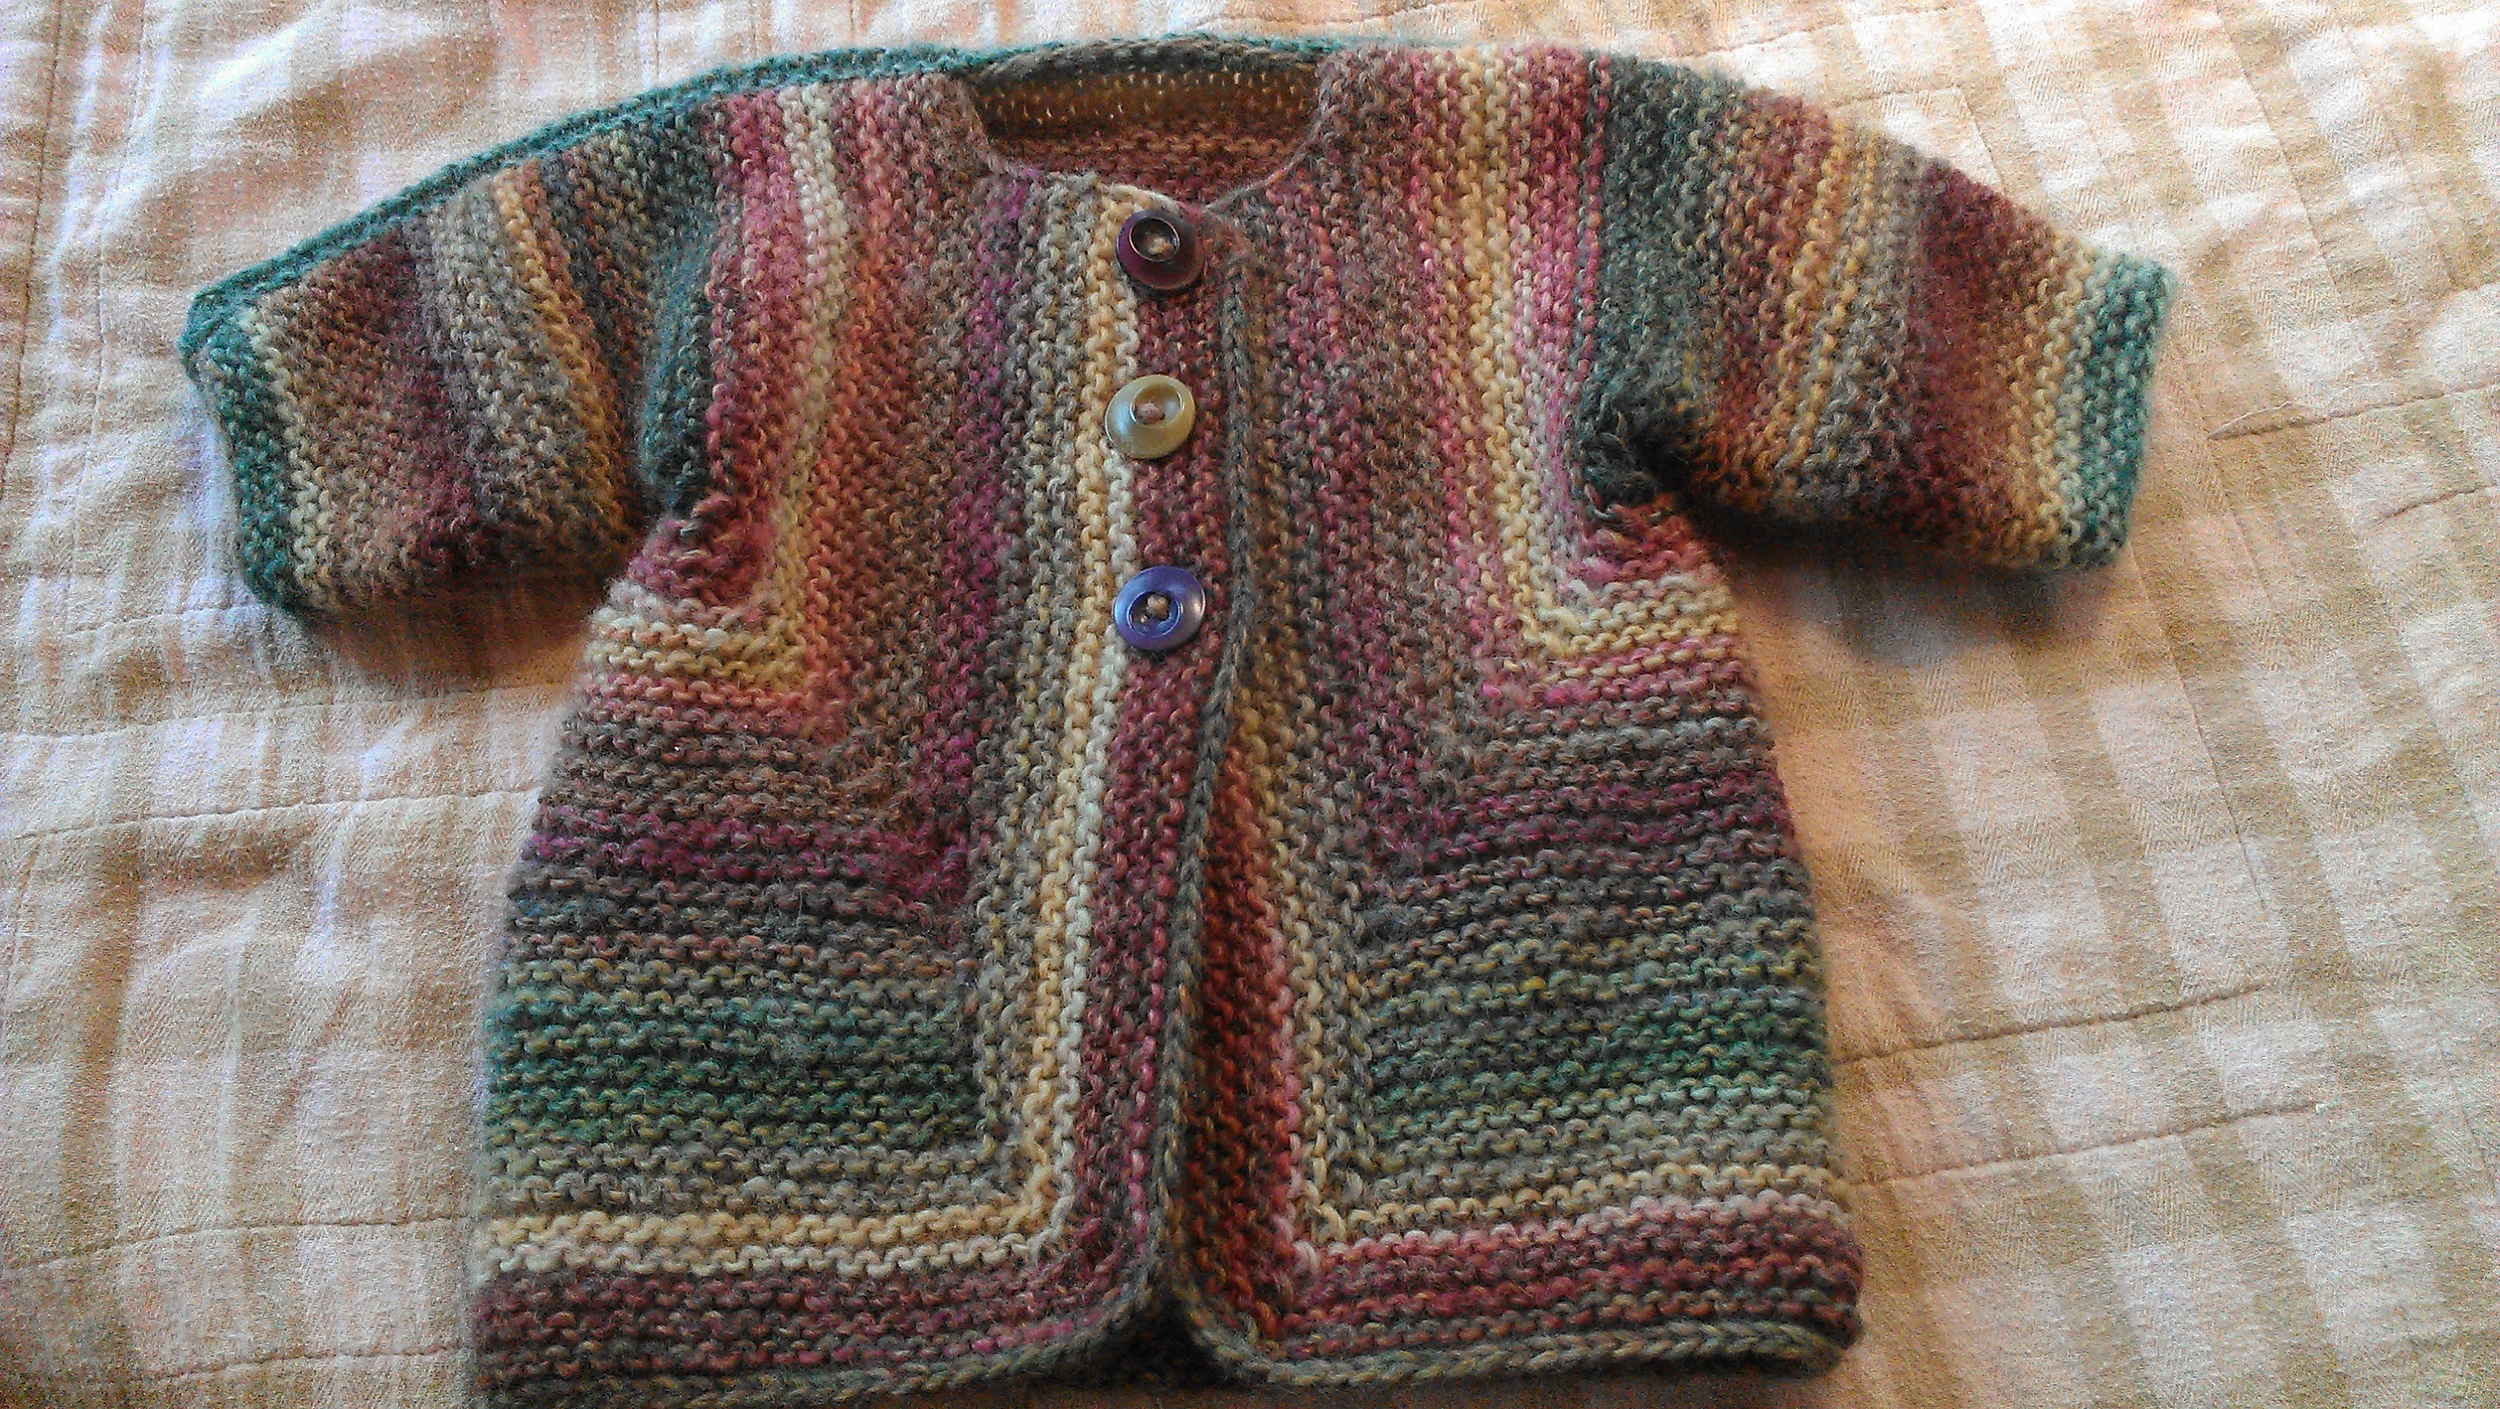 Baby Surprise Jacket, a very fun pattern. Knitting this is an exercise in trust that's been amazing knitters for years!